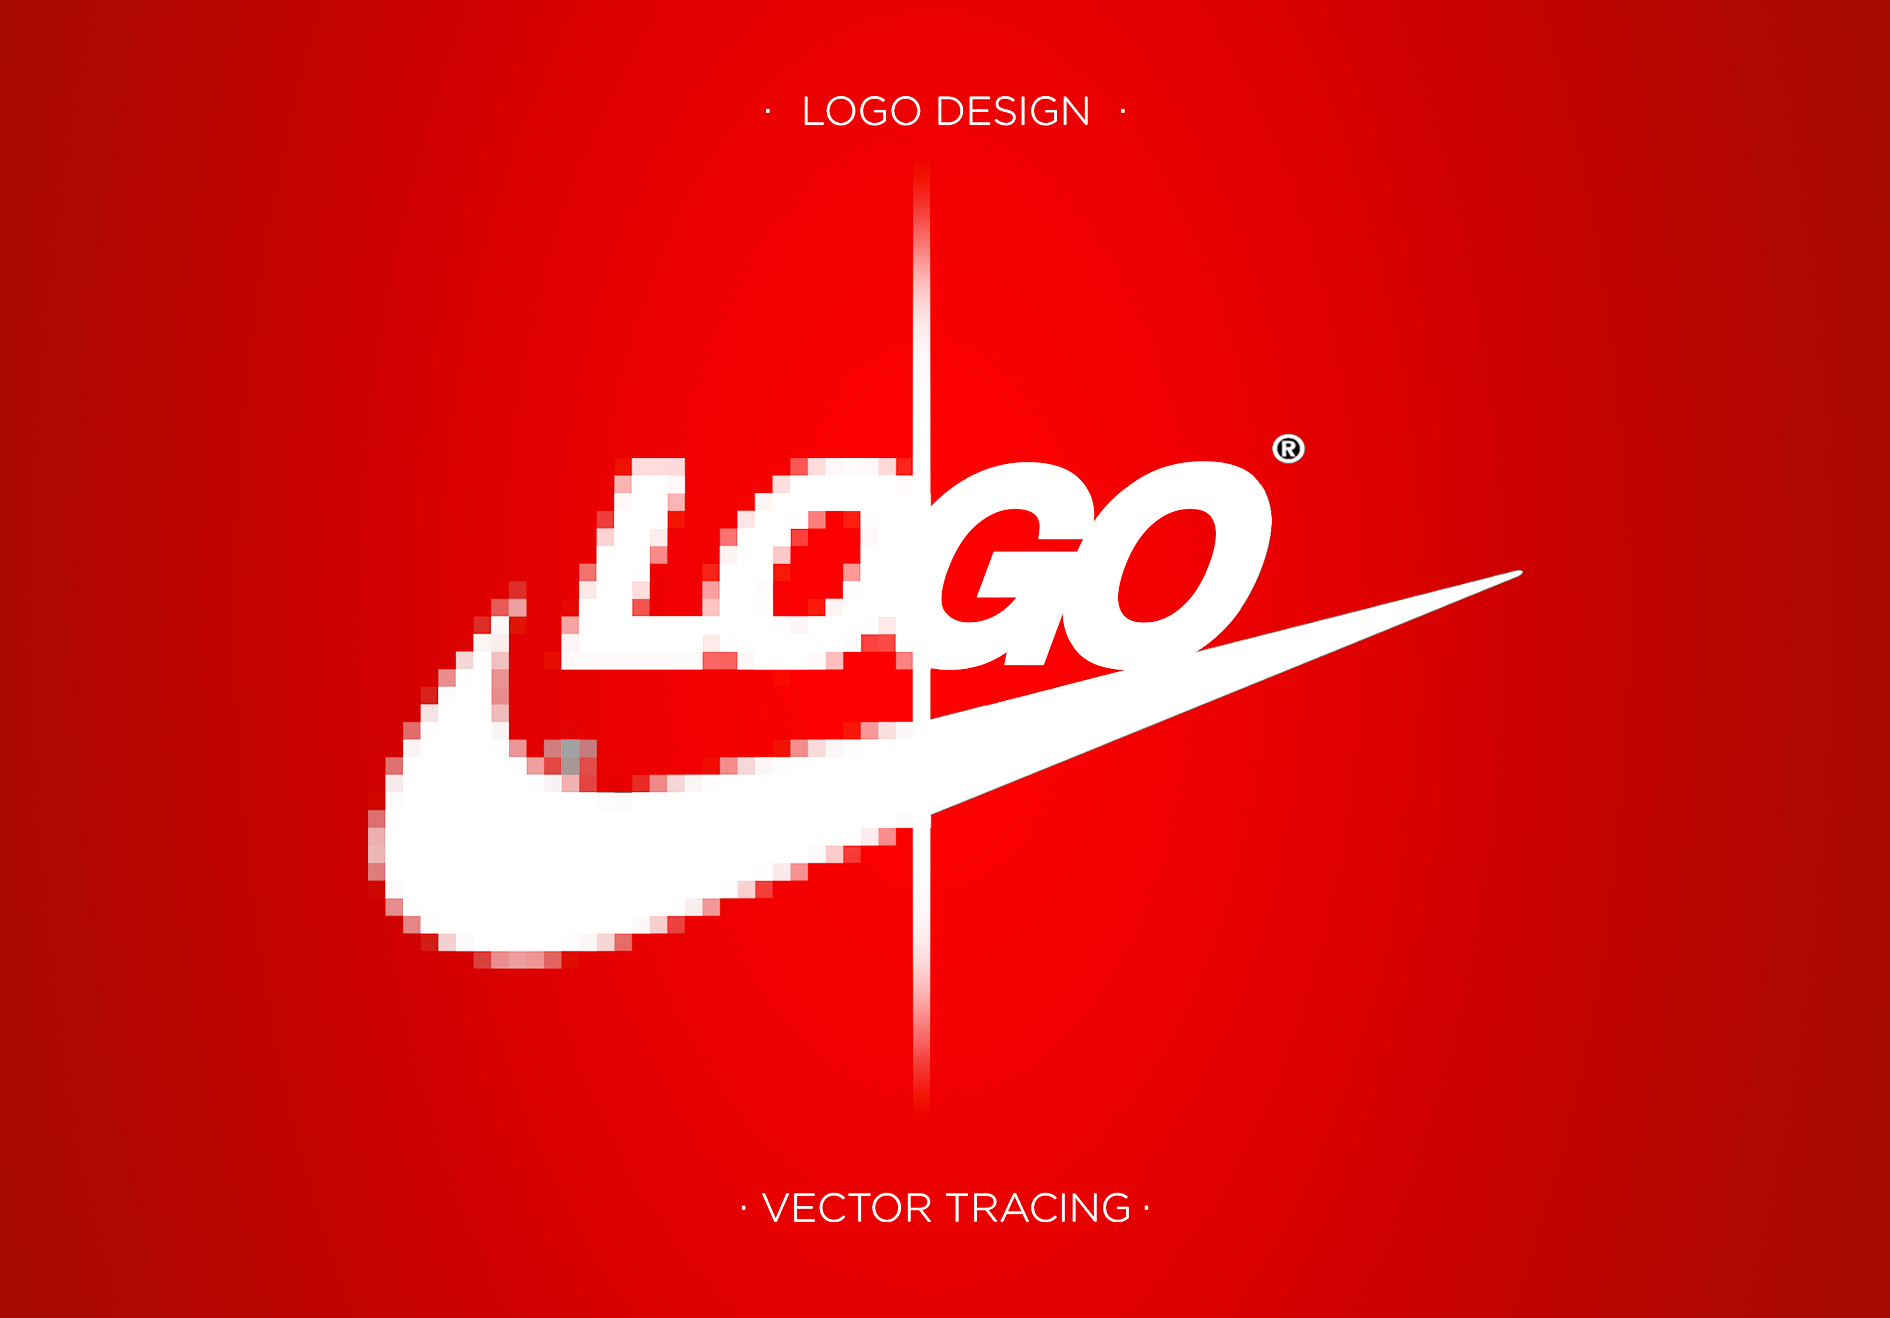 LOGO DESIGN AND VECTOR TRACING for professional and personnal use